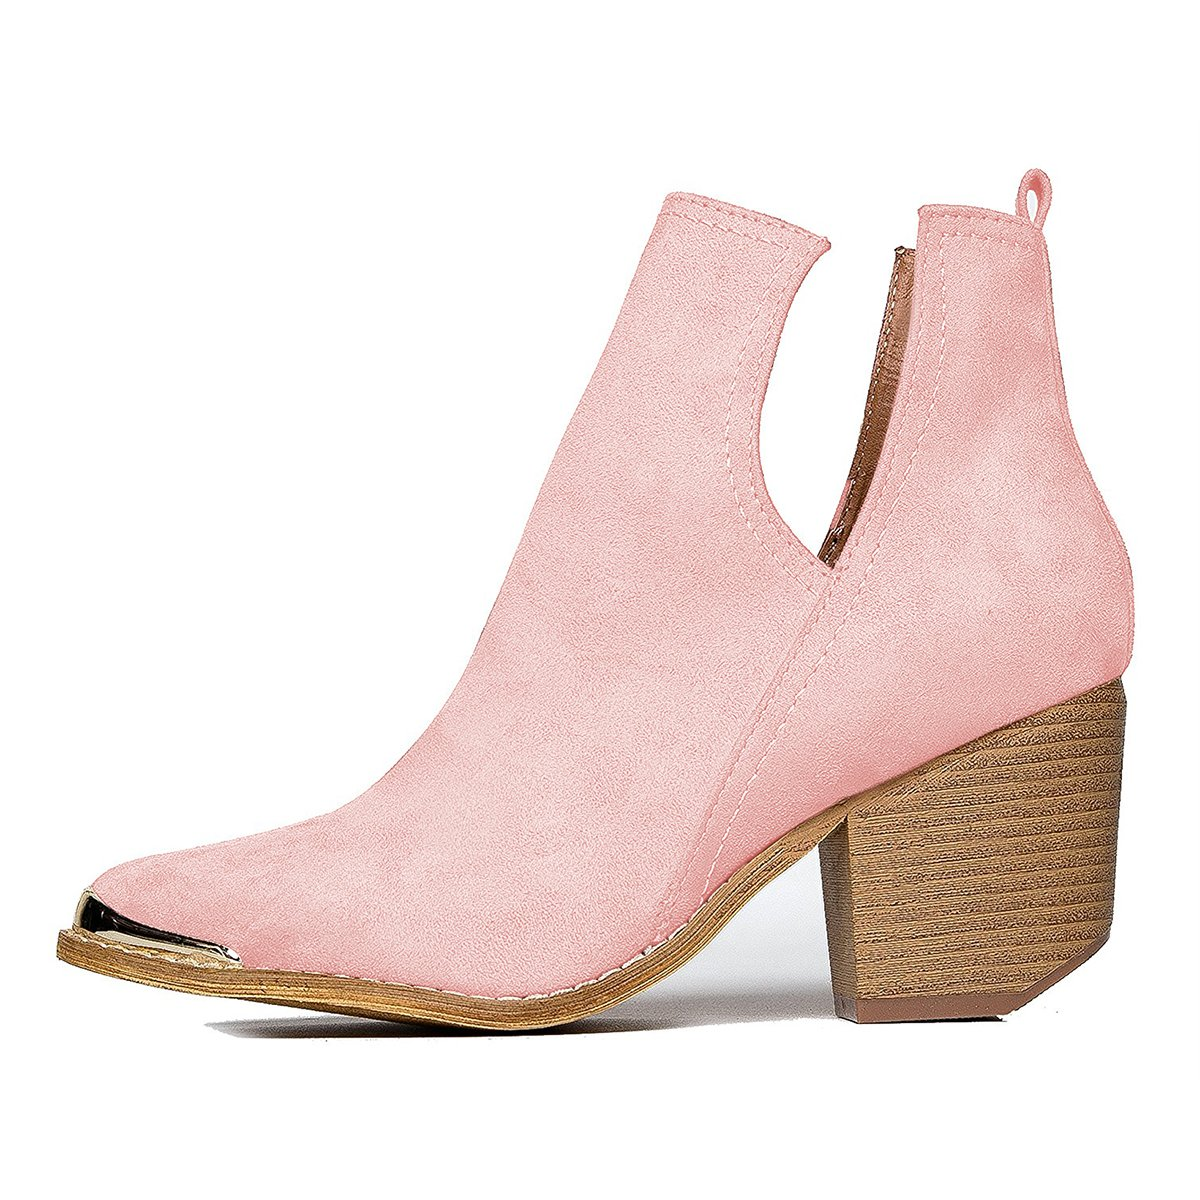 YDN Women Ankle Booties Low Heel Faux Suede Stacked Boots Cut Out Shoes with Metal Toe B079BBCL5V 8 M US Pink